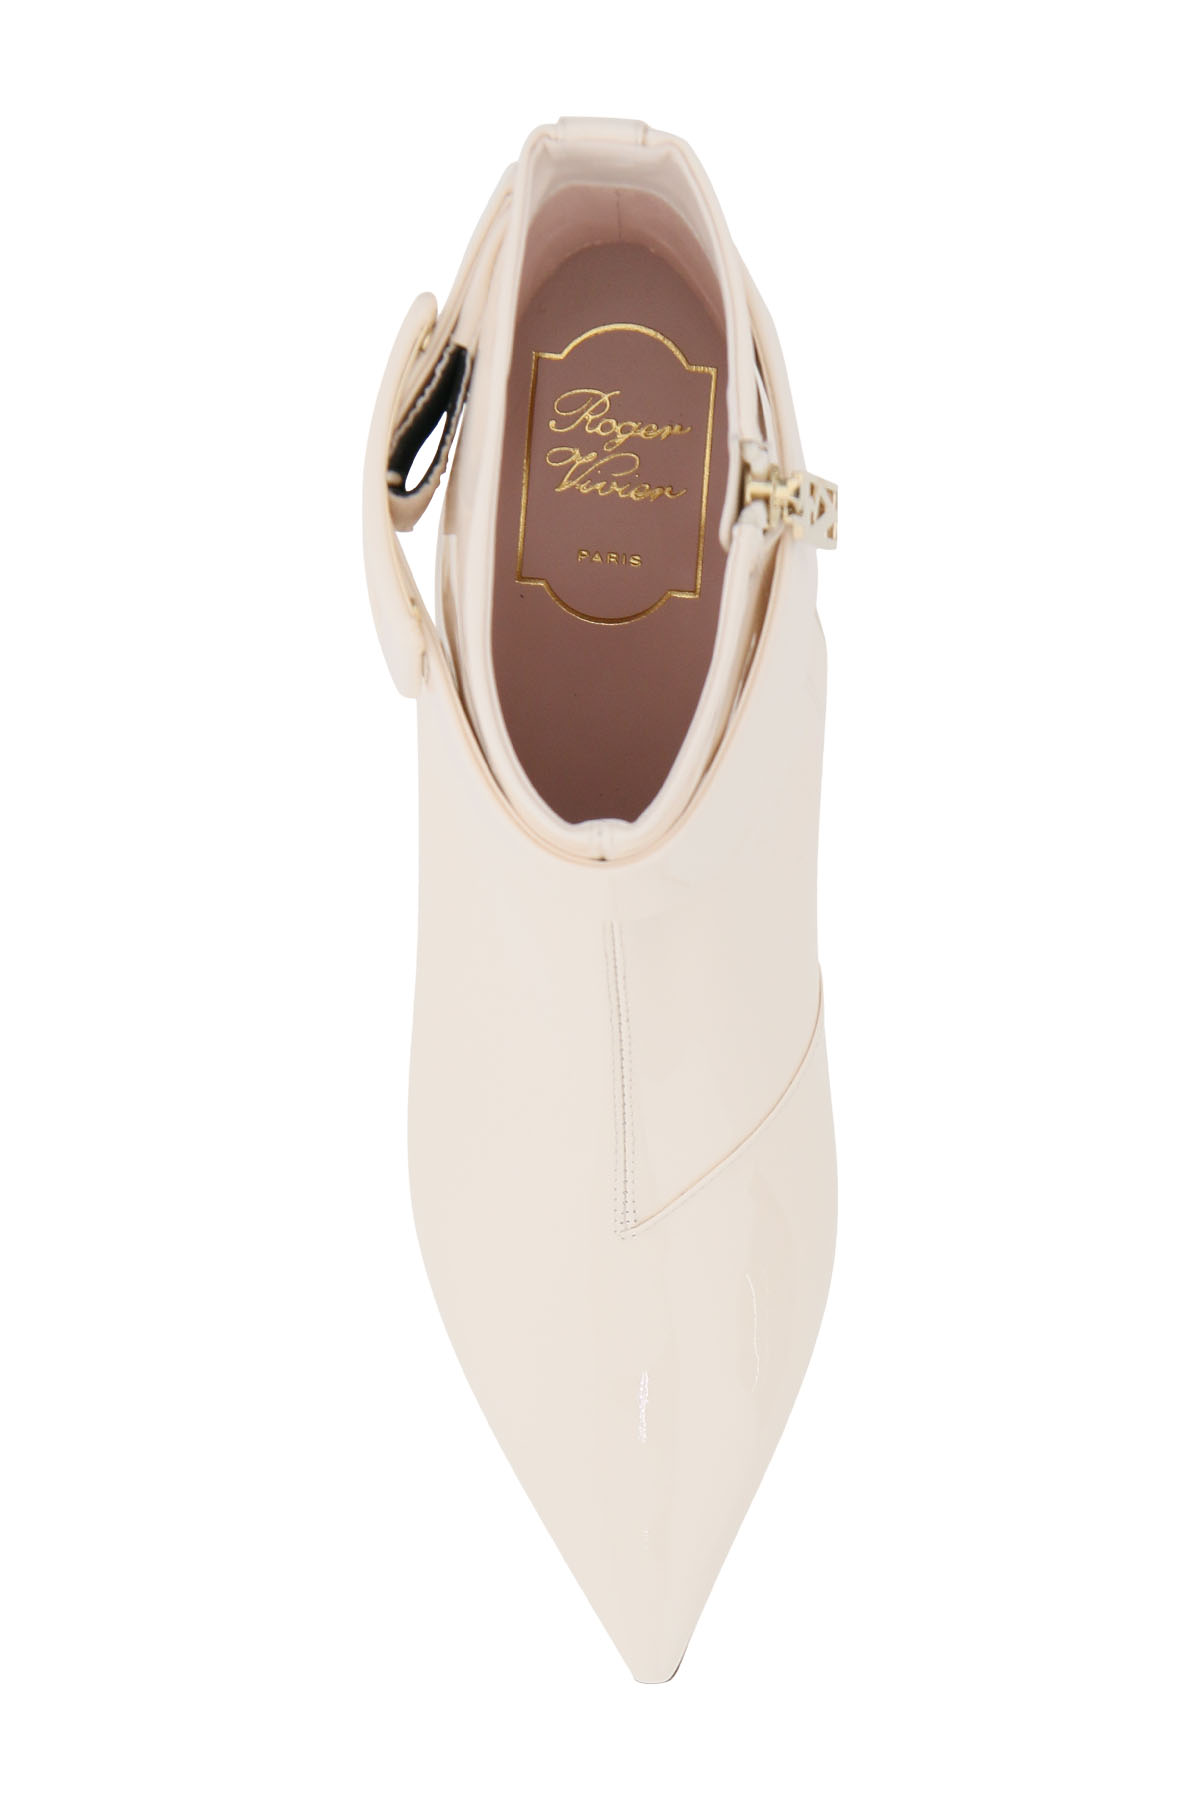 Roger vivier stivaletti in vernice pointy covered buckle